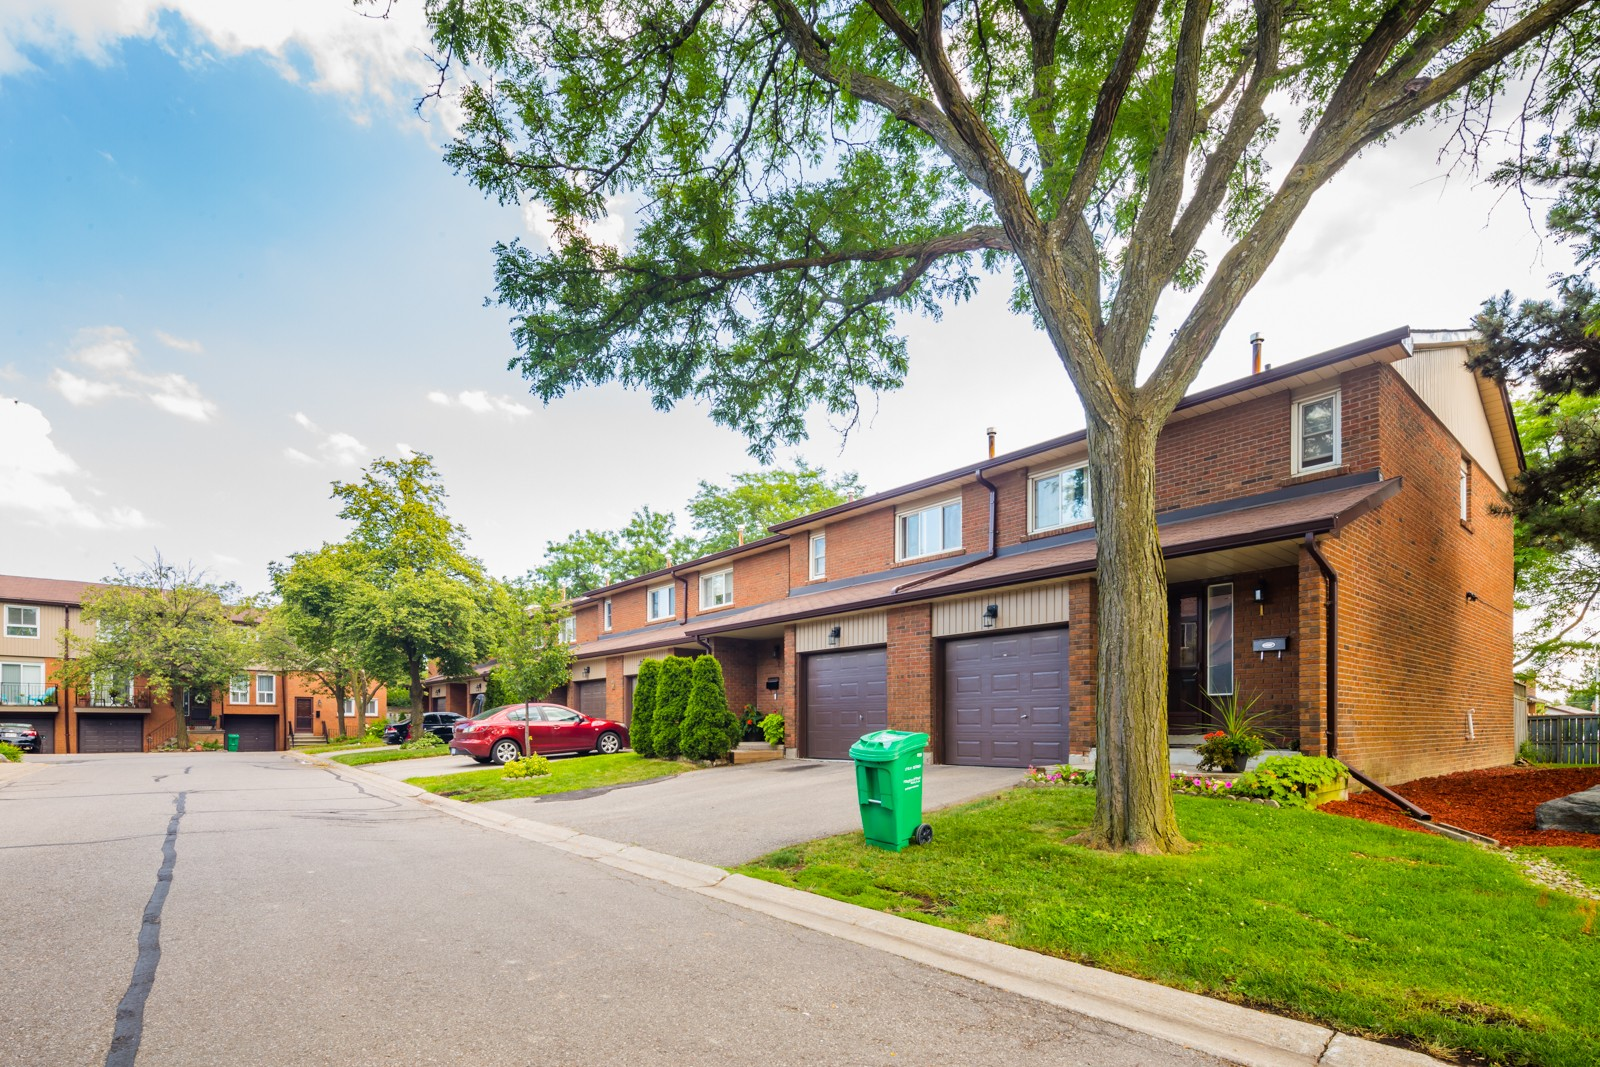 725 Vermouth Avenue Townhouses at 725 Vermouth Ave, Mississauga 0